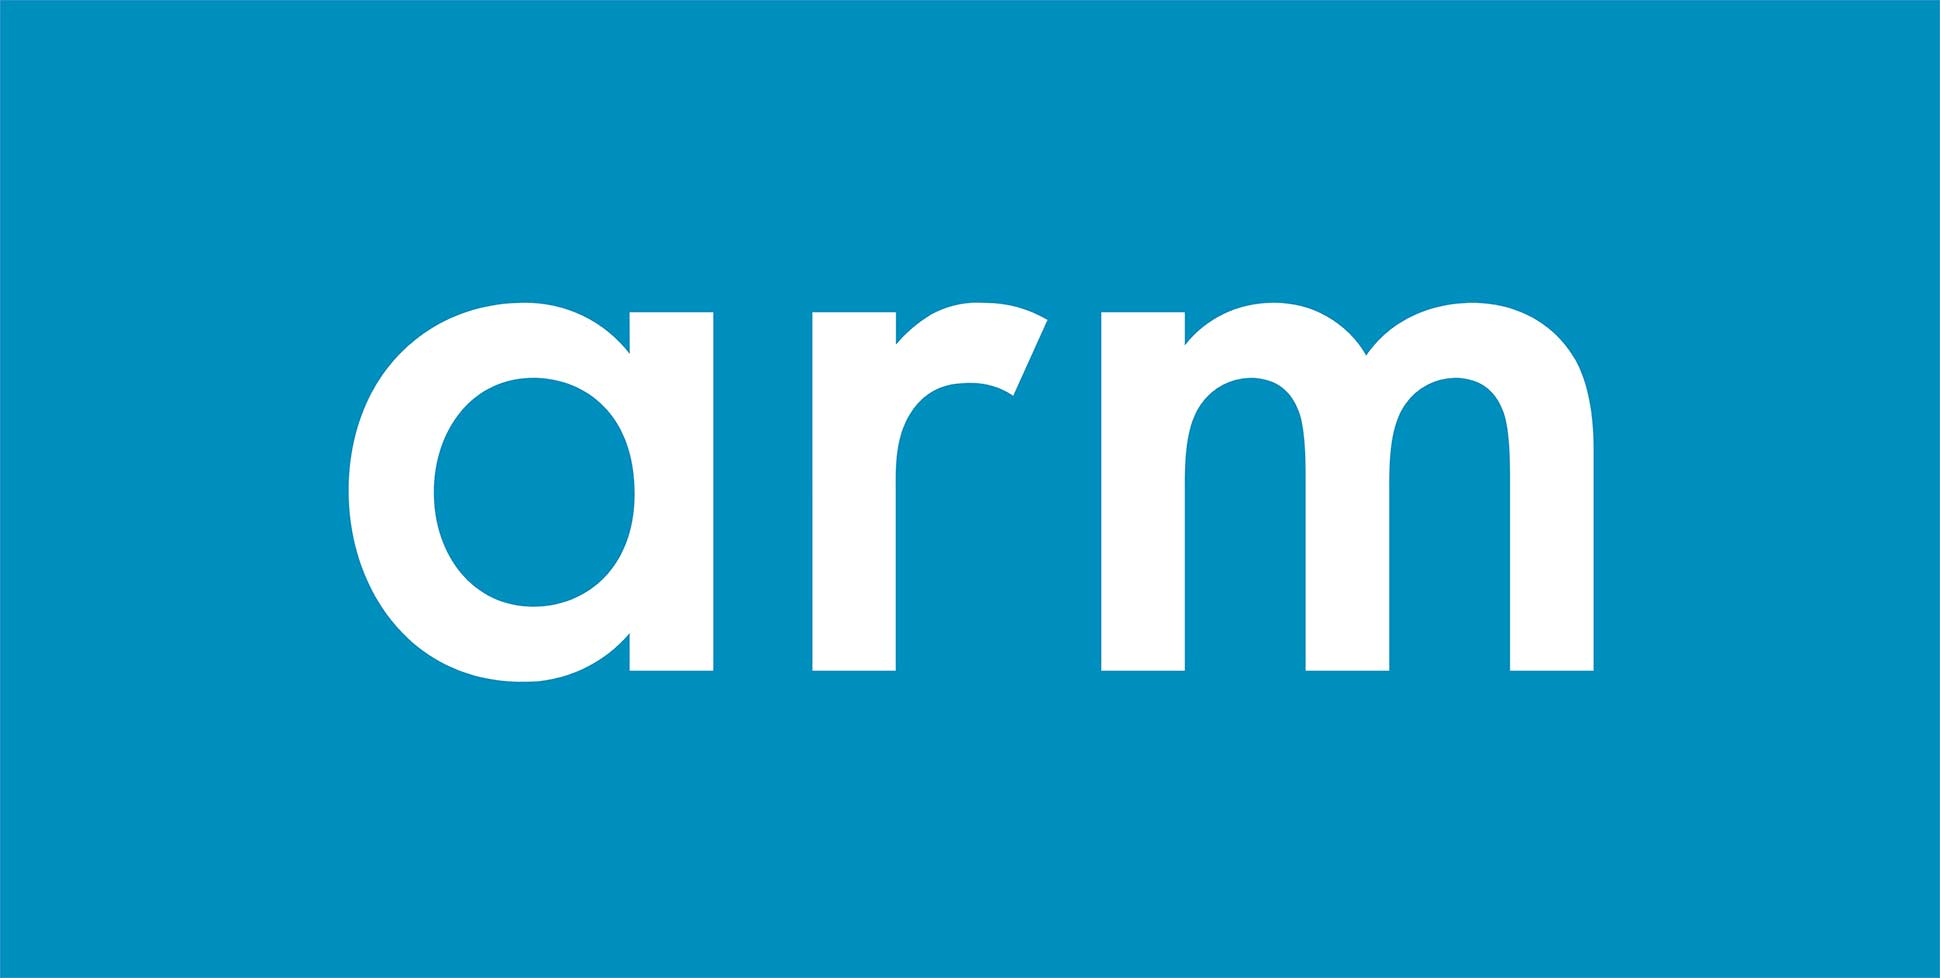 Armv9: The Future of Specialized Compute